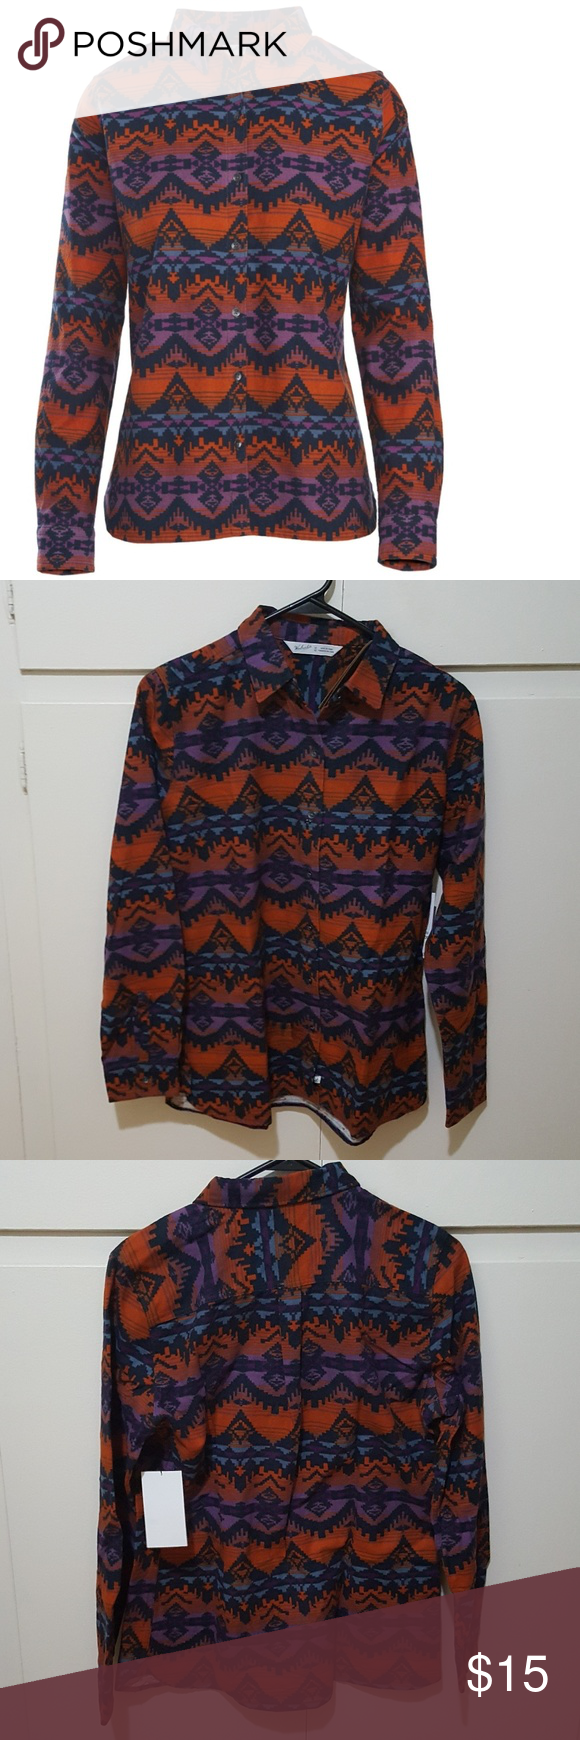 d7b3d825 Woolrich Keystone Printed Chamois Shirt Made from soft, 100% cotton with  heritage styling,